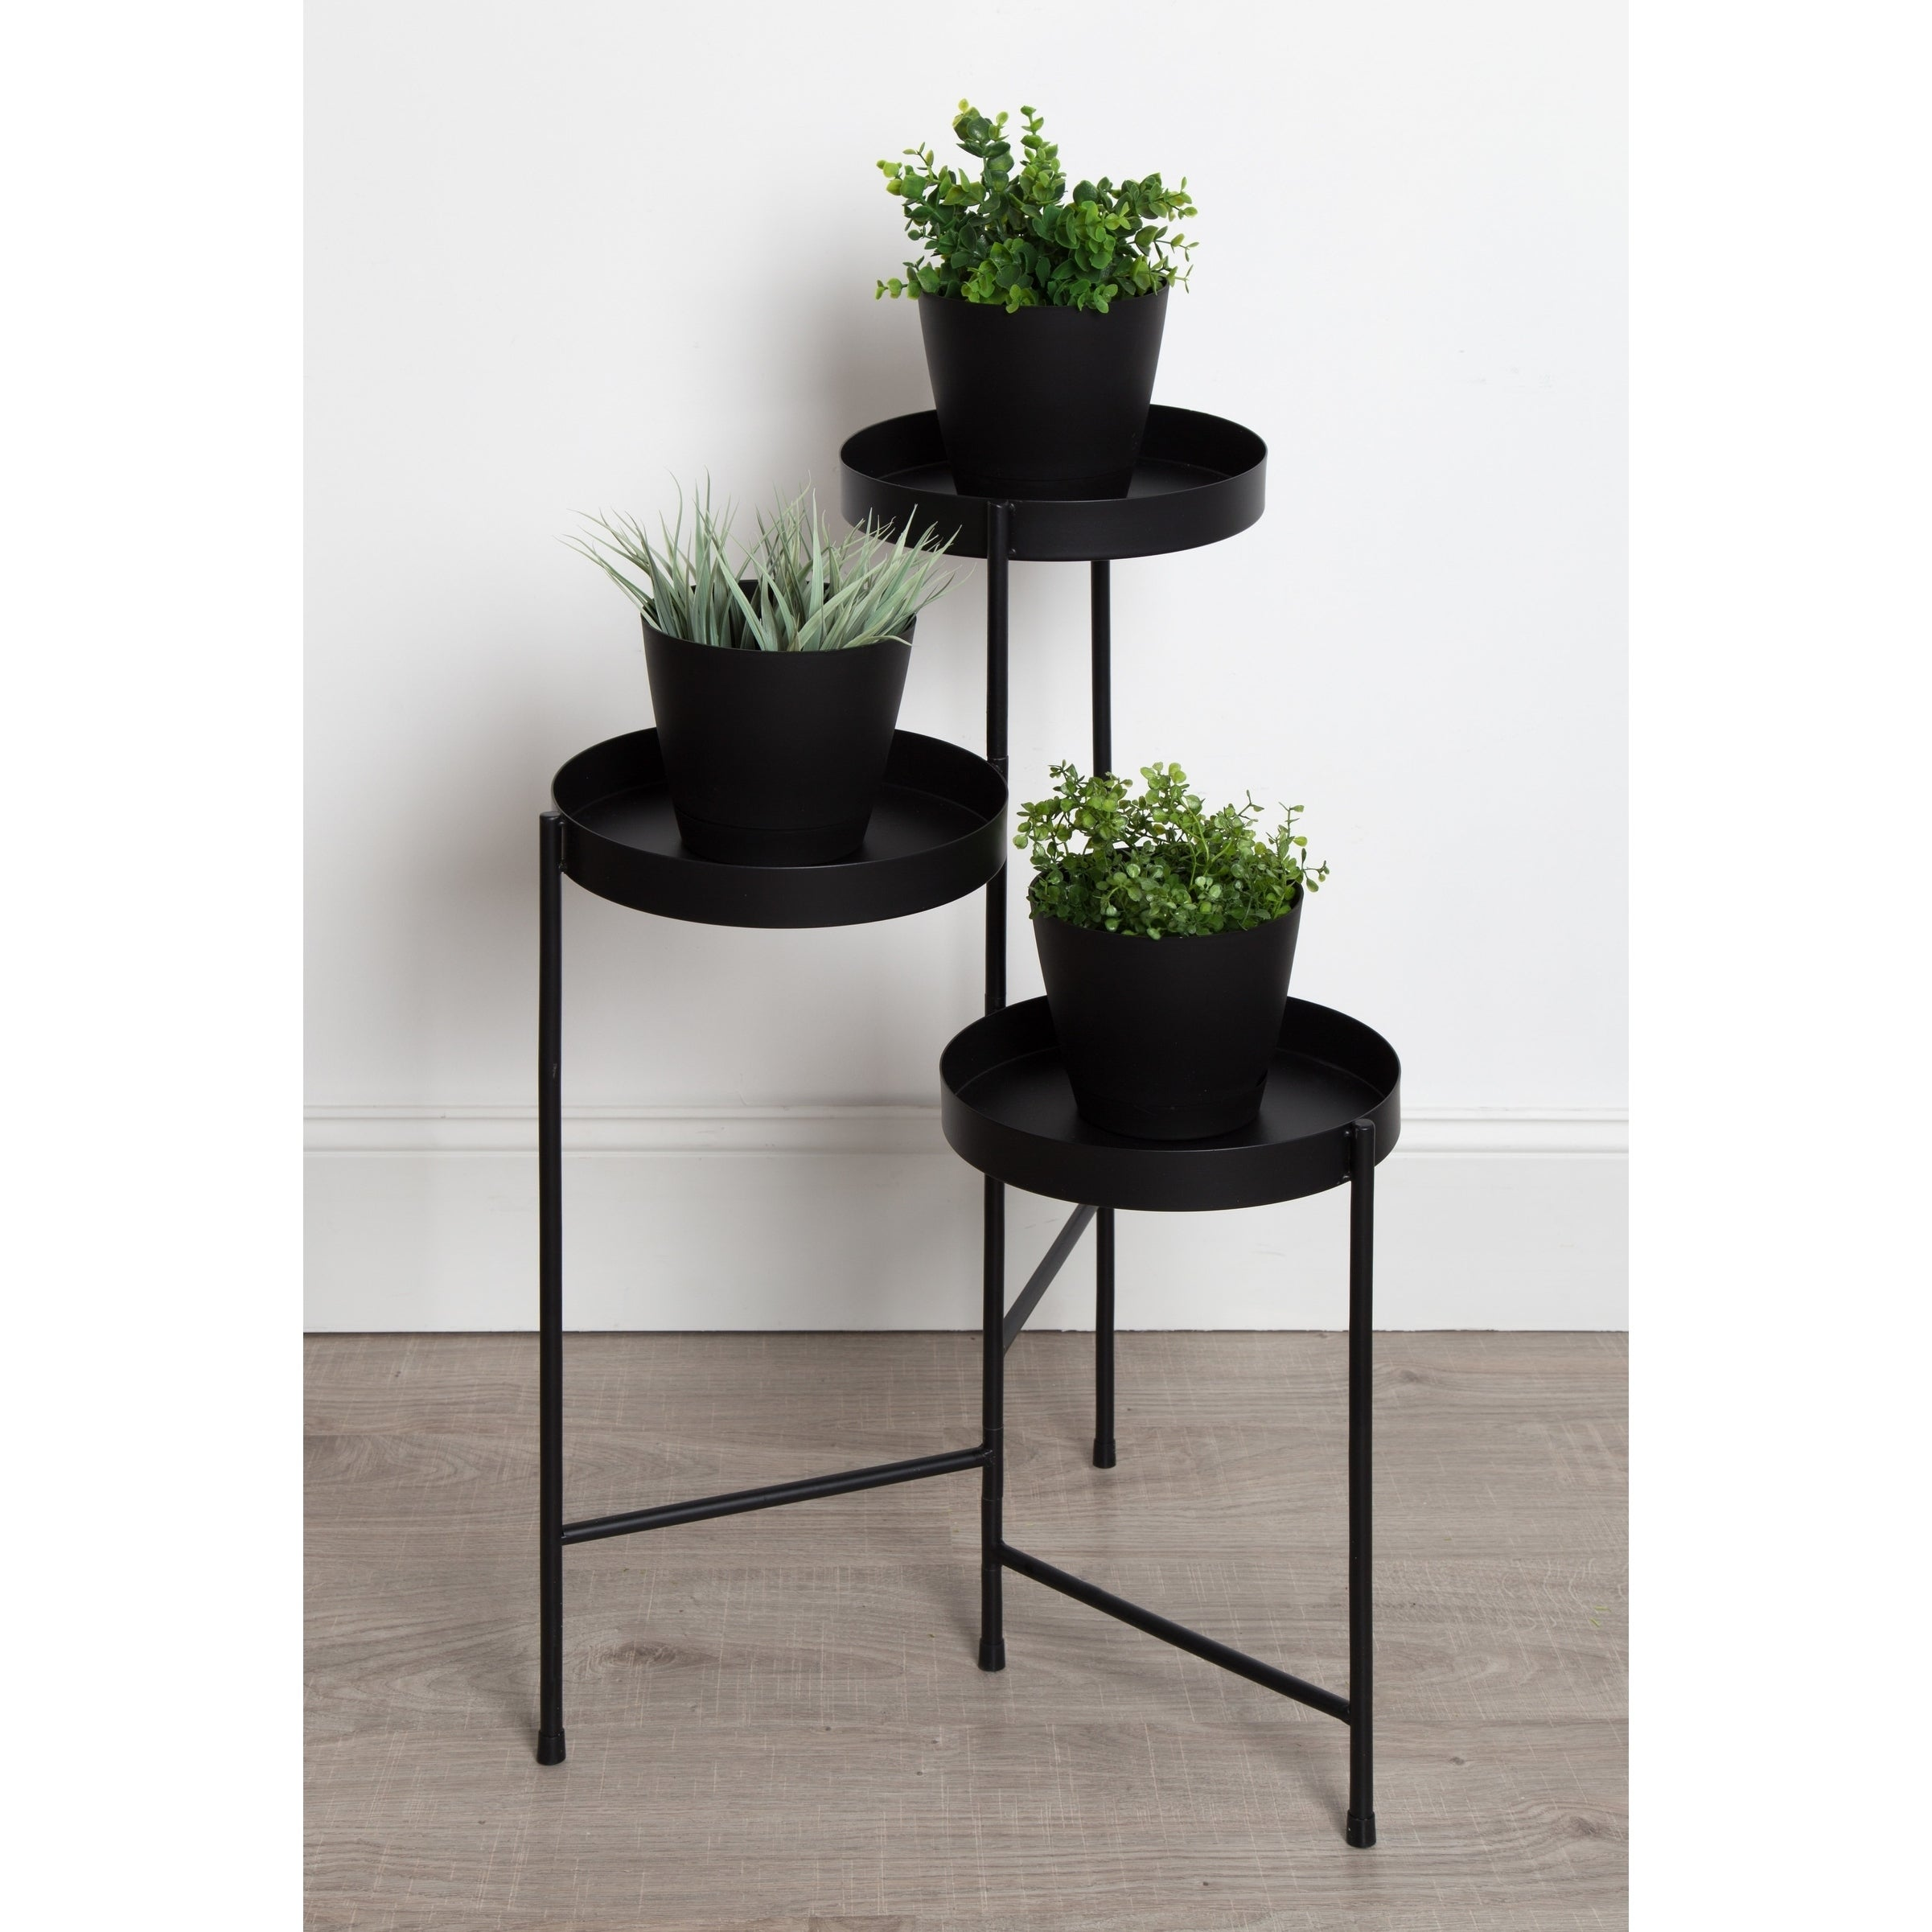 Shop Kate And Laurel Finn Tri Level Metal Plant Stand On Sale